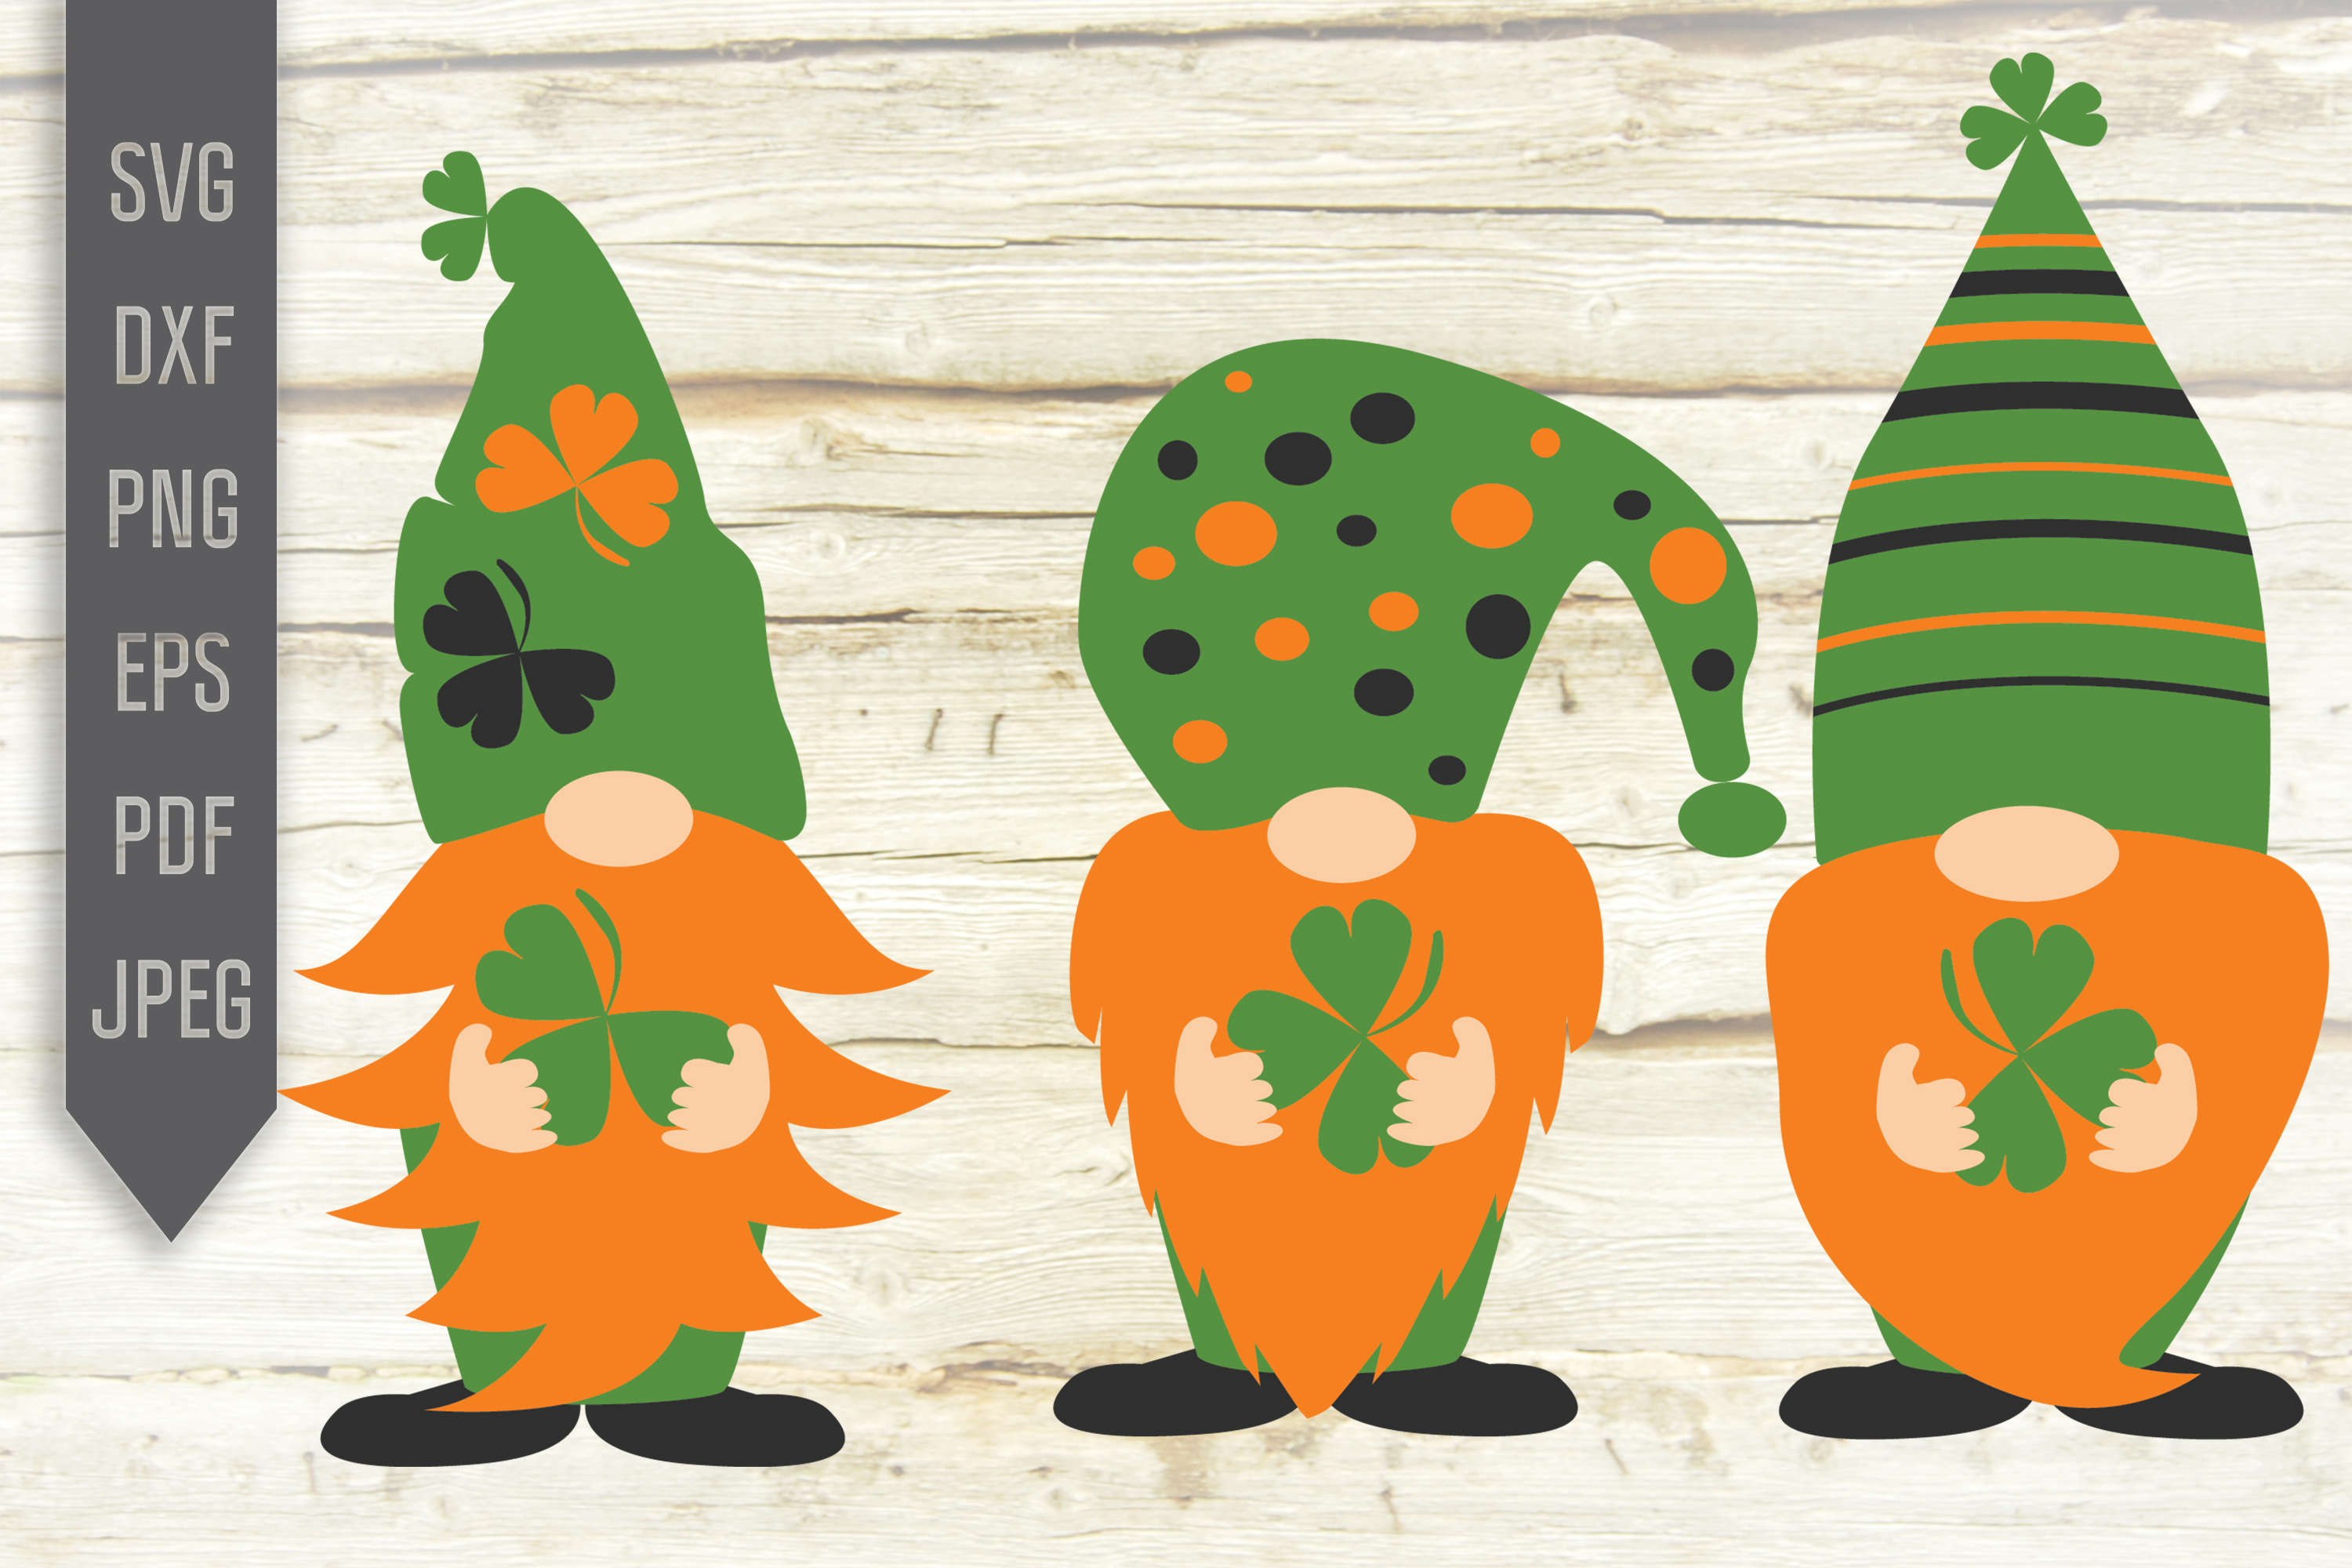 Download Free Irish Gnomes Graphic By Svglaboratory Creative Fabrica for Cricut Explore, Silhouette and other cutting machines.